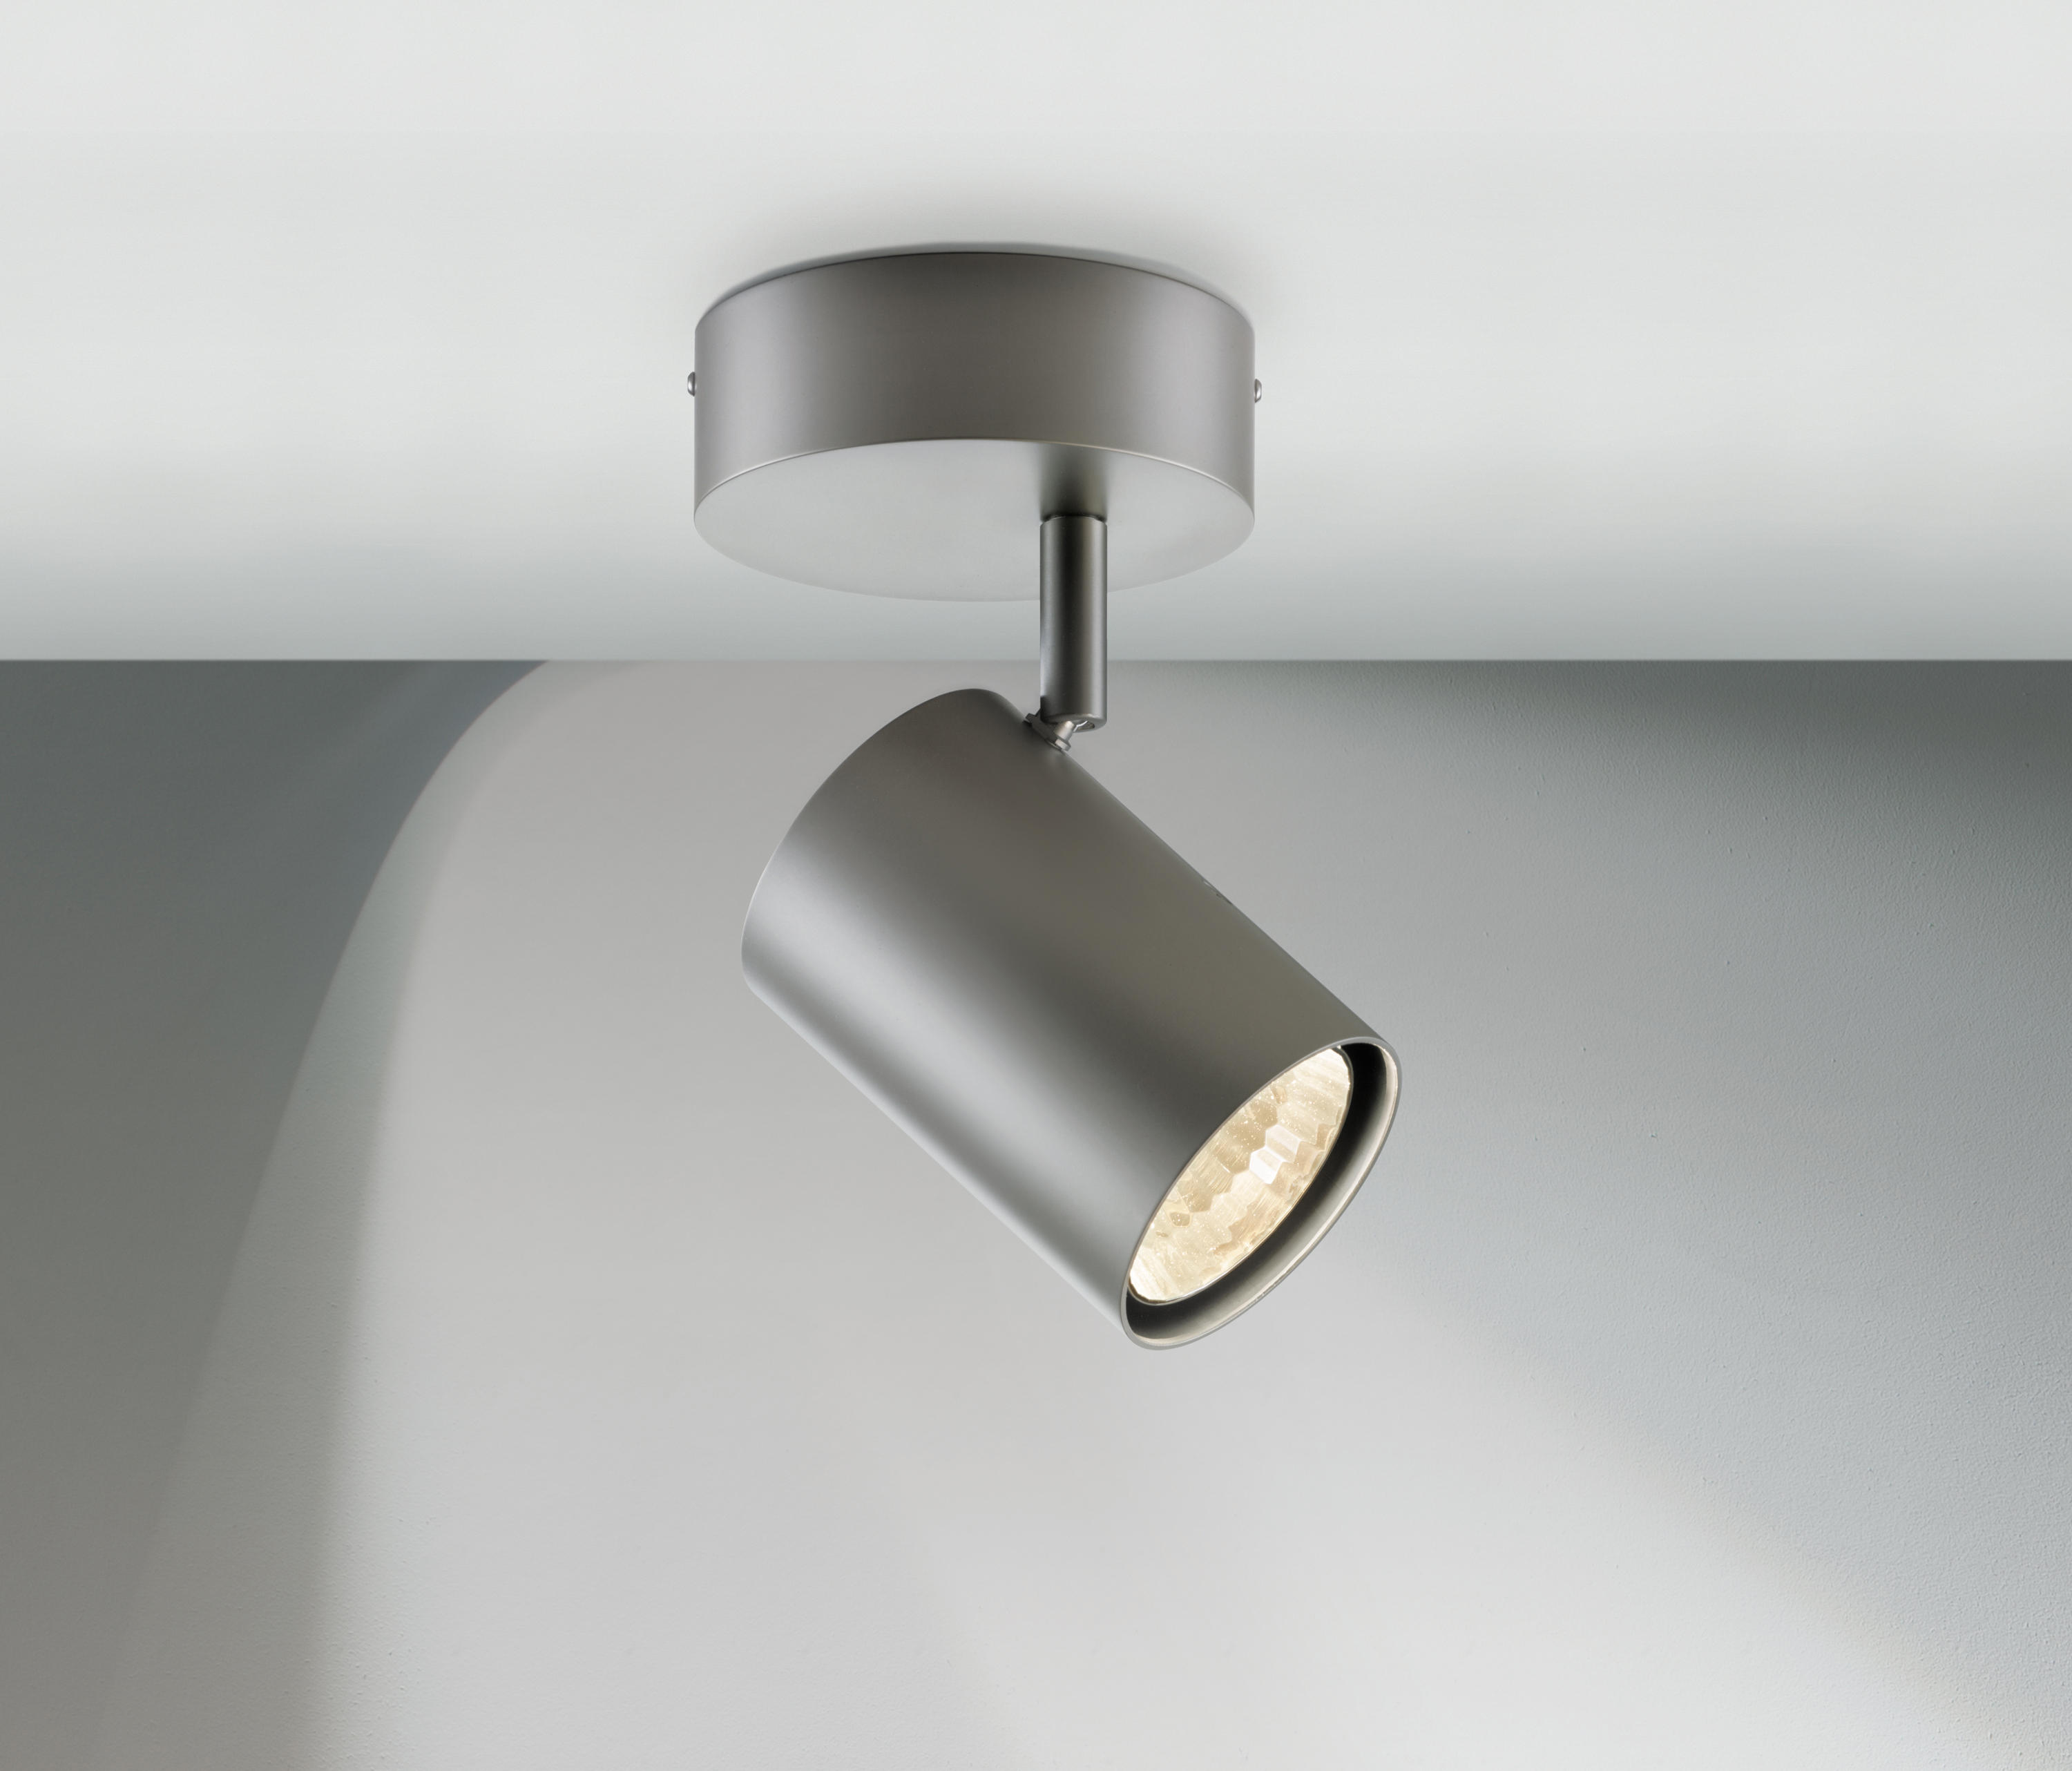 PROFESSIONAL SPOT 1 - Ceiling-mounted spotlights from Licht im Raum ...